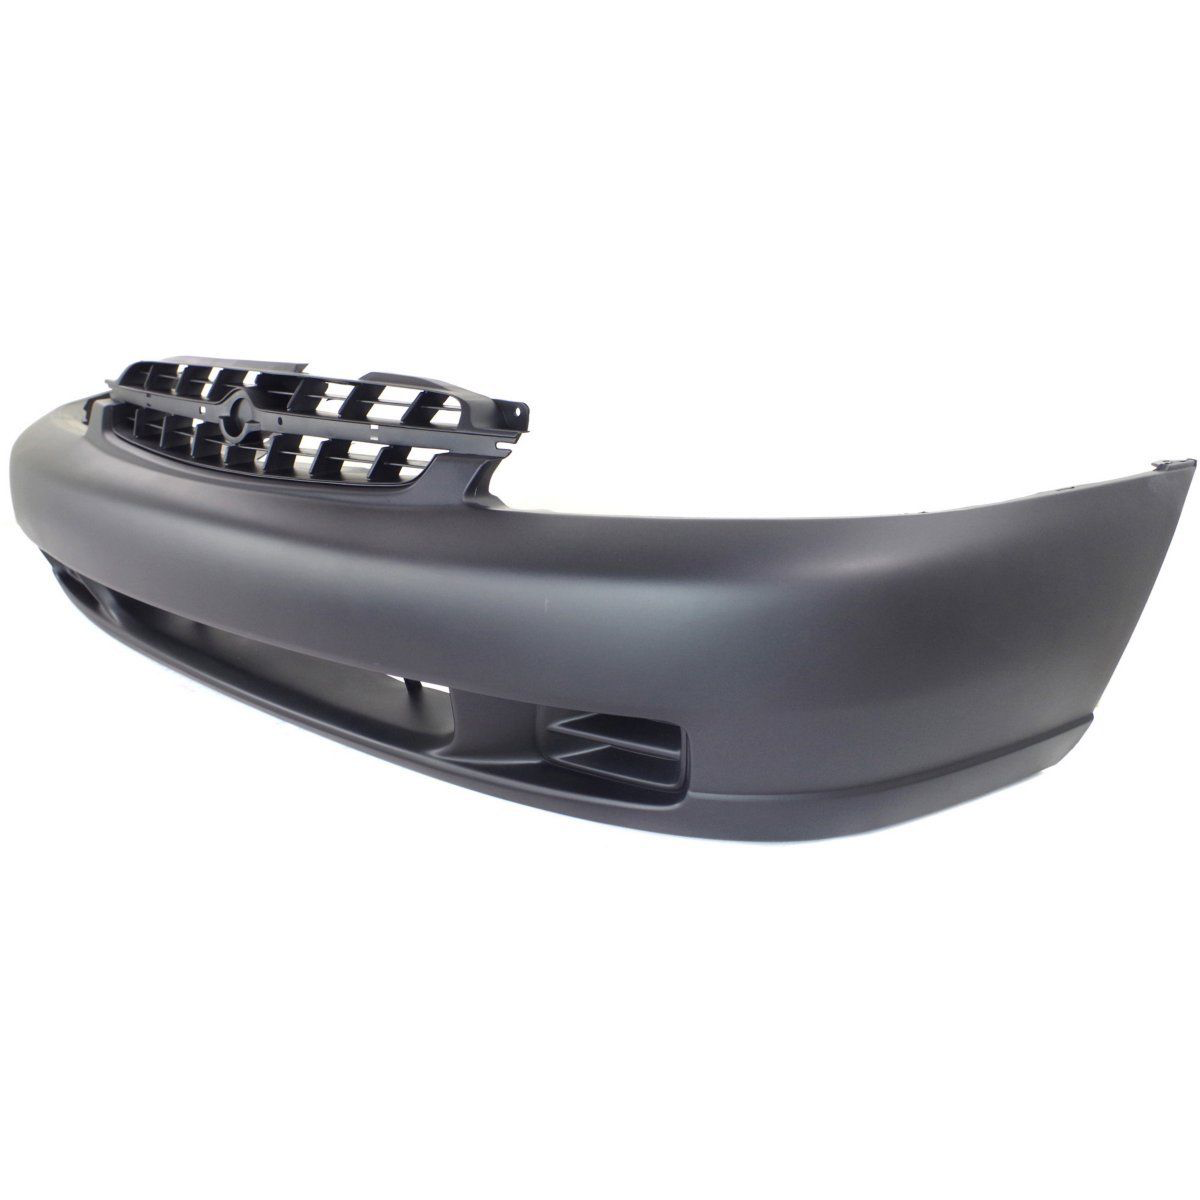 1998-1999 NISSAN ALTIMA Front Bumper Cover XE/GXE/GLE  w/o Fog Lamps Painted to Match